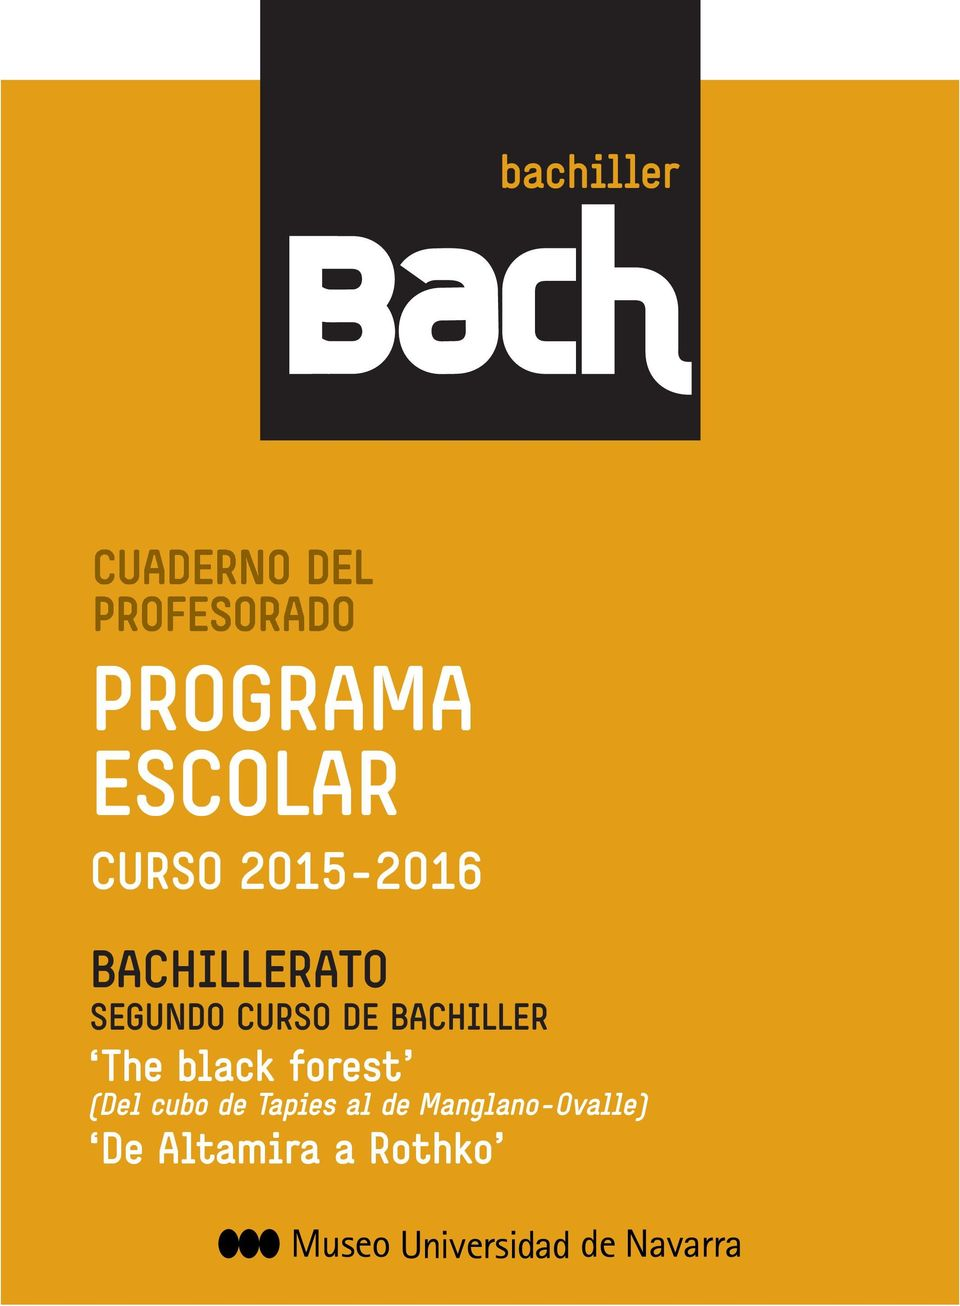 BACHILLER The black forest (Del cubo de